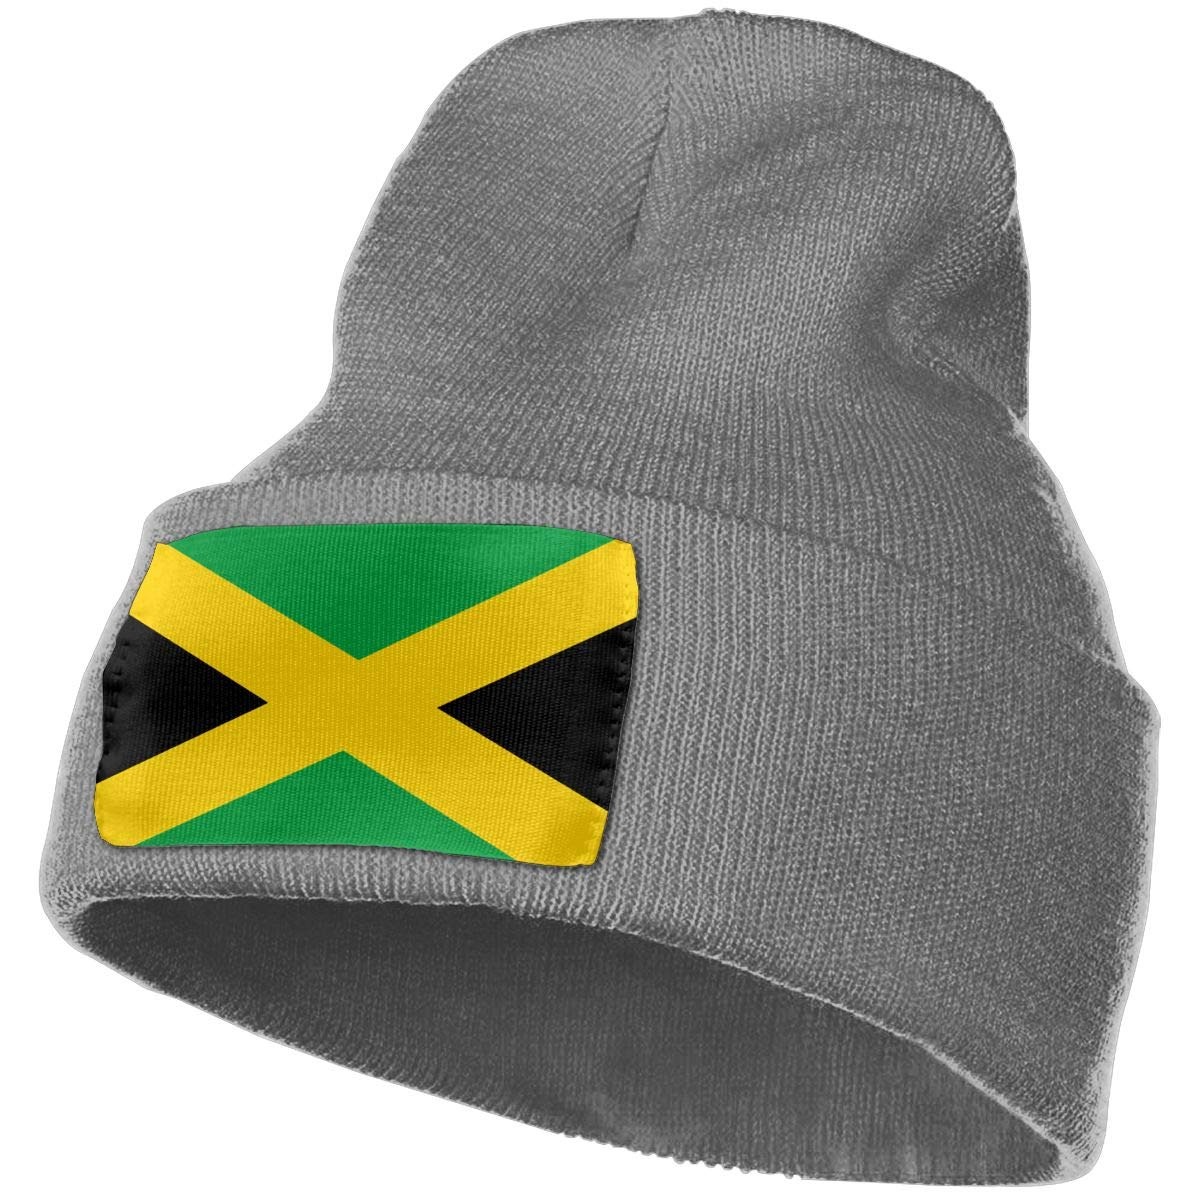 TAOMAP89 Jamaica Flag Women and Men Skull Caps Winter Warm Stretchy Knit Beanie Hats